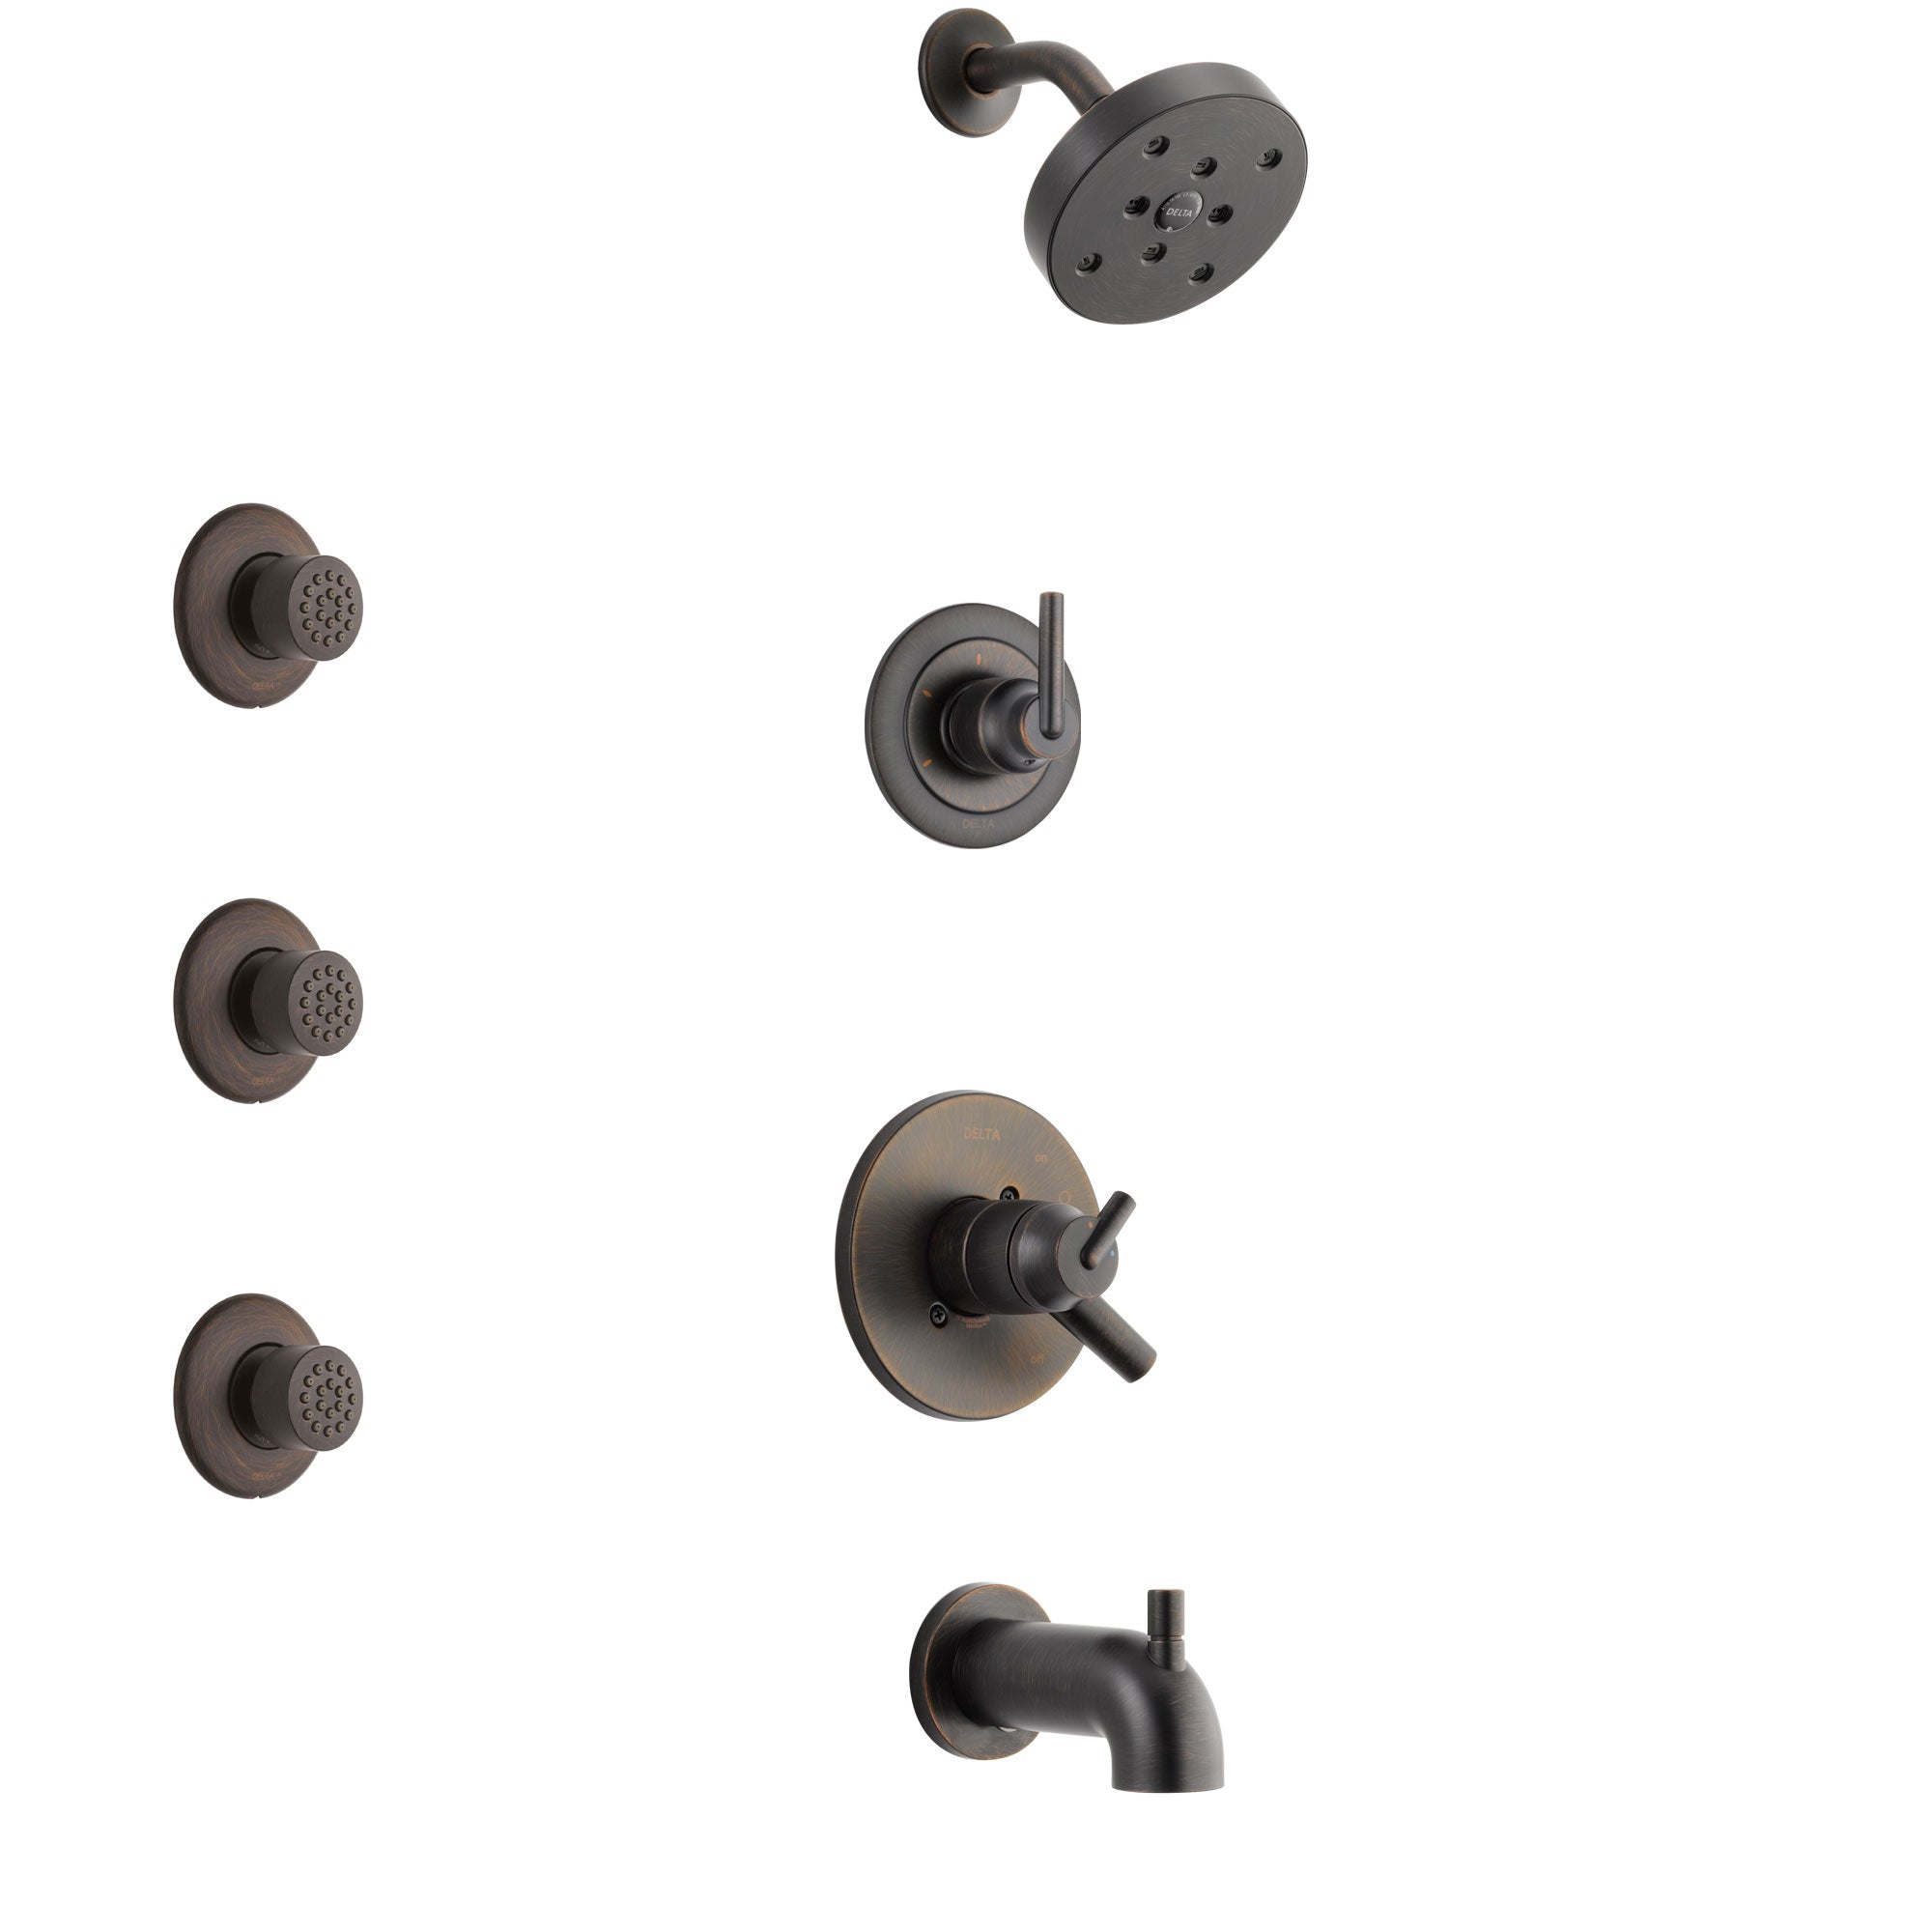 Delta Trinsic Venetian Bronze Finish Tub and Shower System with Dual Control Handle, 3-Setting Diverter, Showerhead, and 3 Body Sprays SS17459RB1